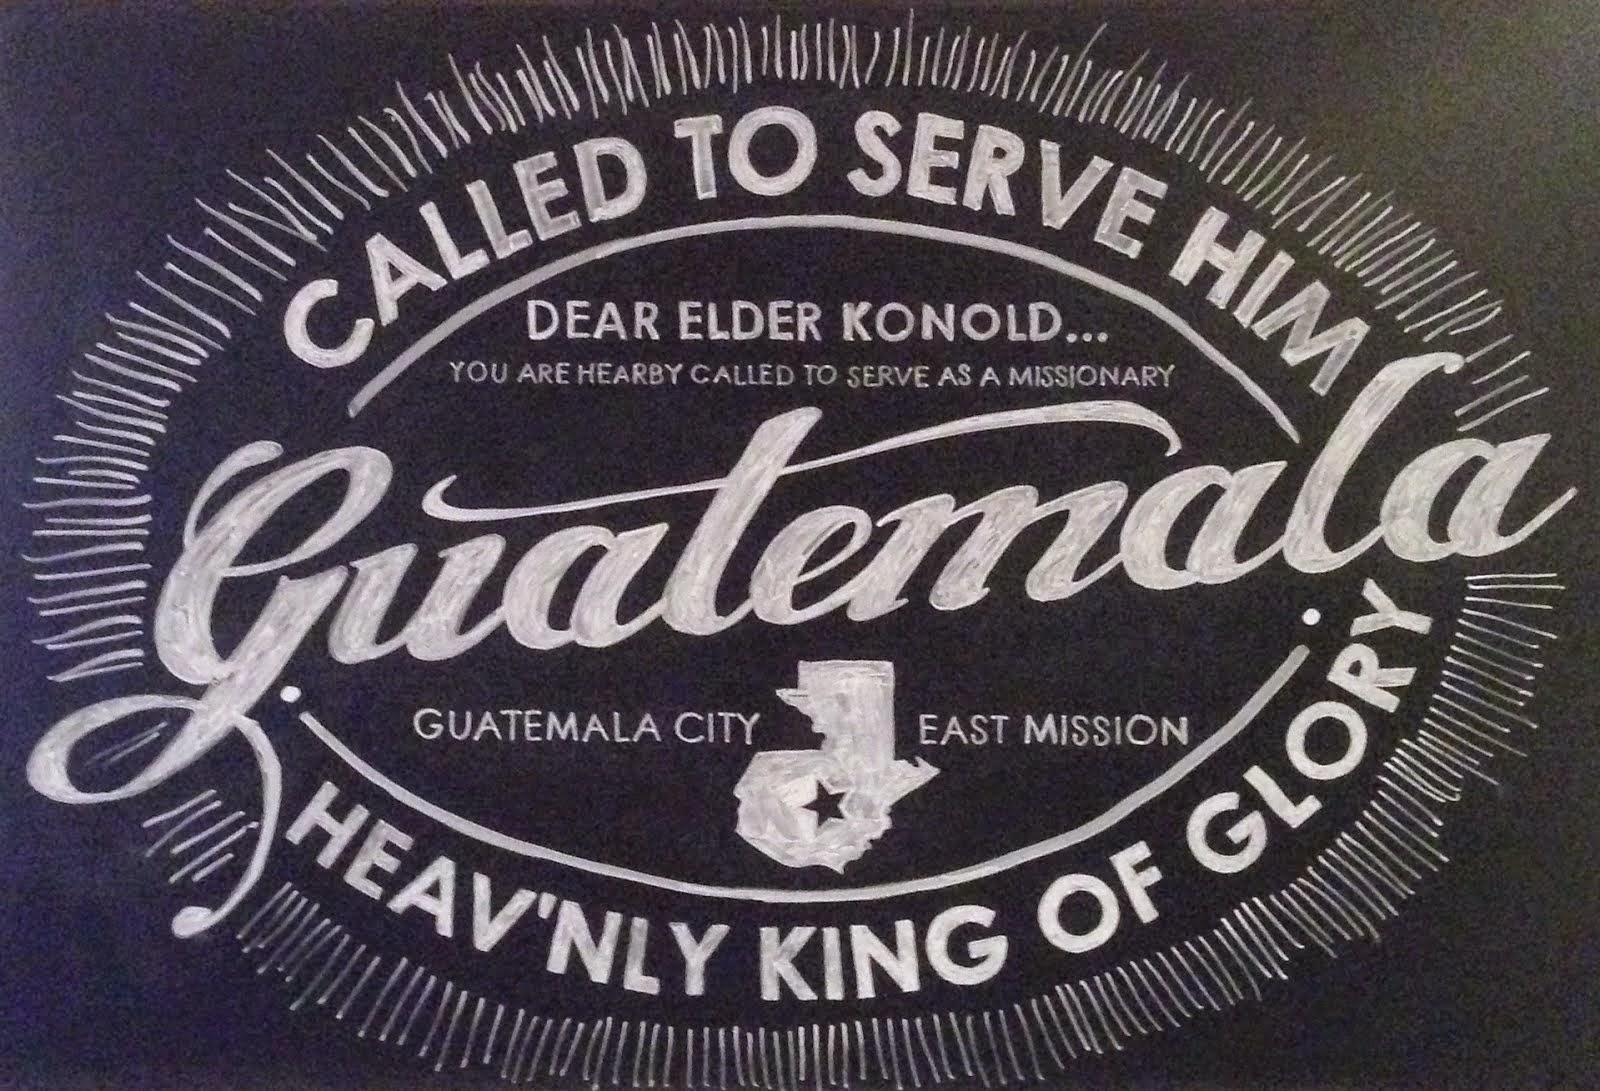 Guatemala City East Mission